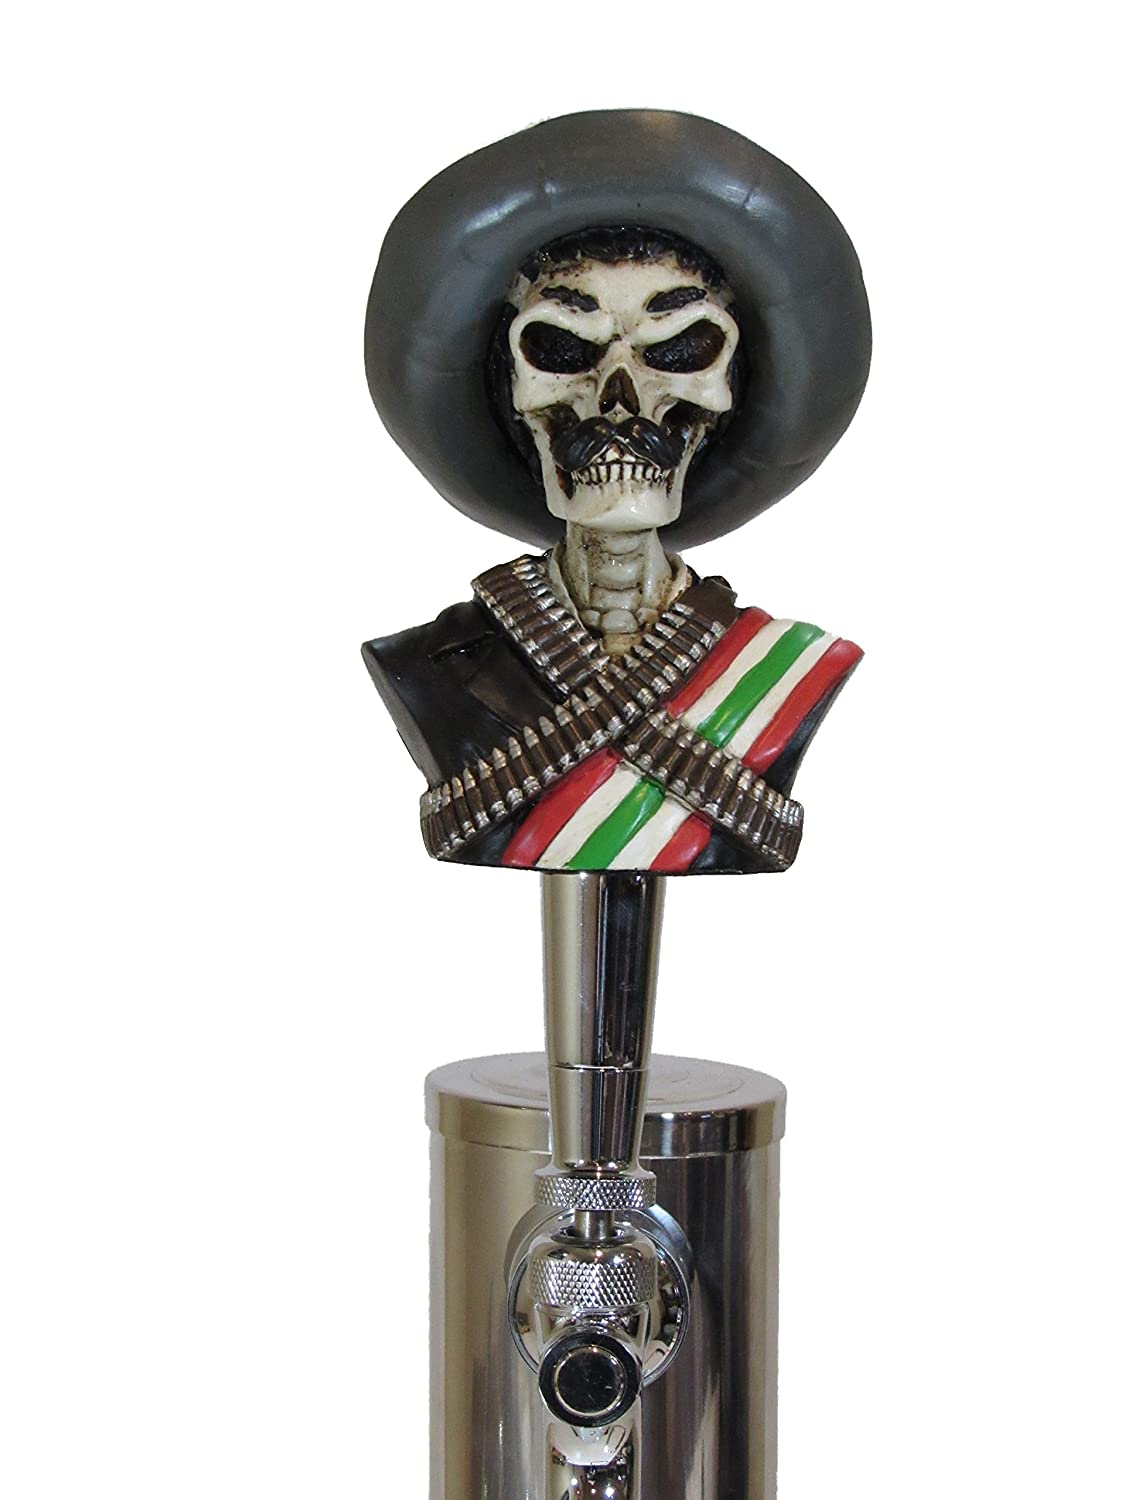 Zapata Sports Bar Beer Tap Handle Kegerator Resin Zombie Breweriana Bar Nor Cal Speed